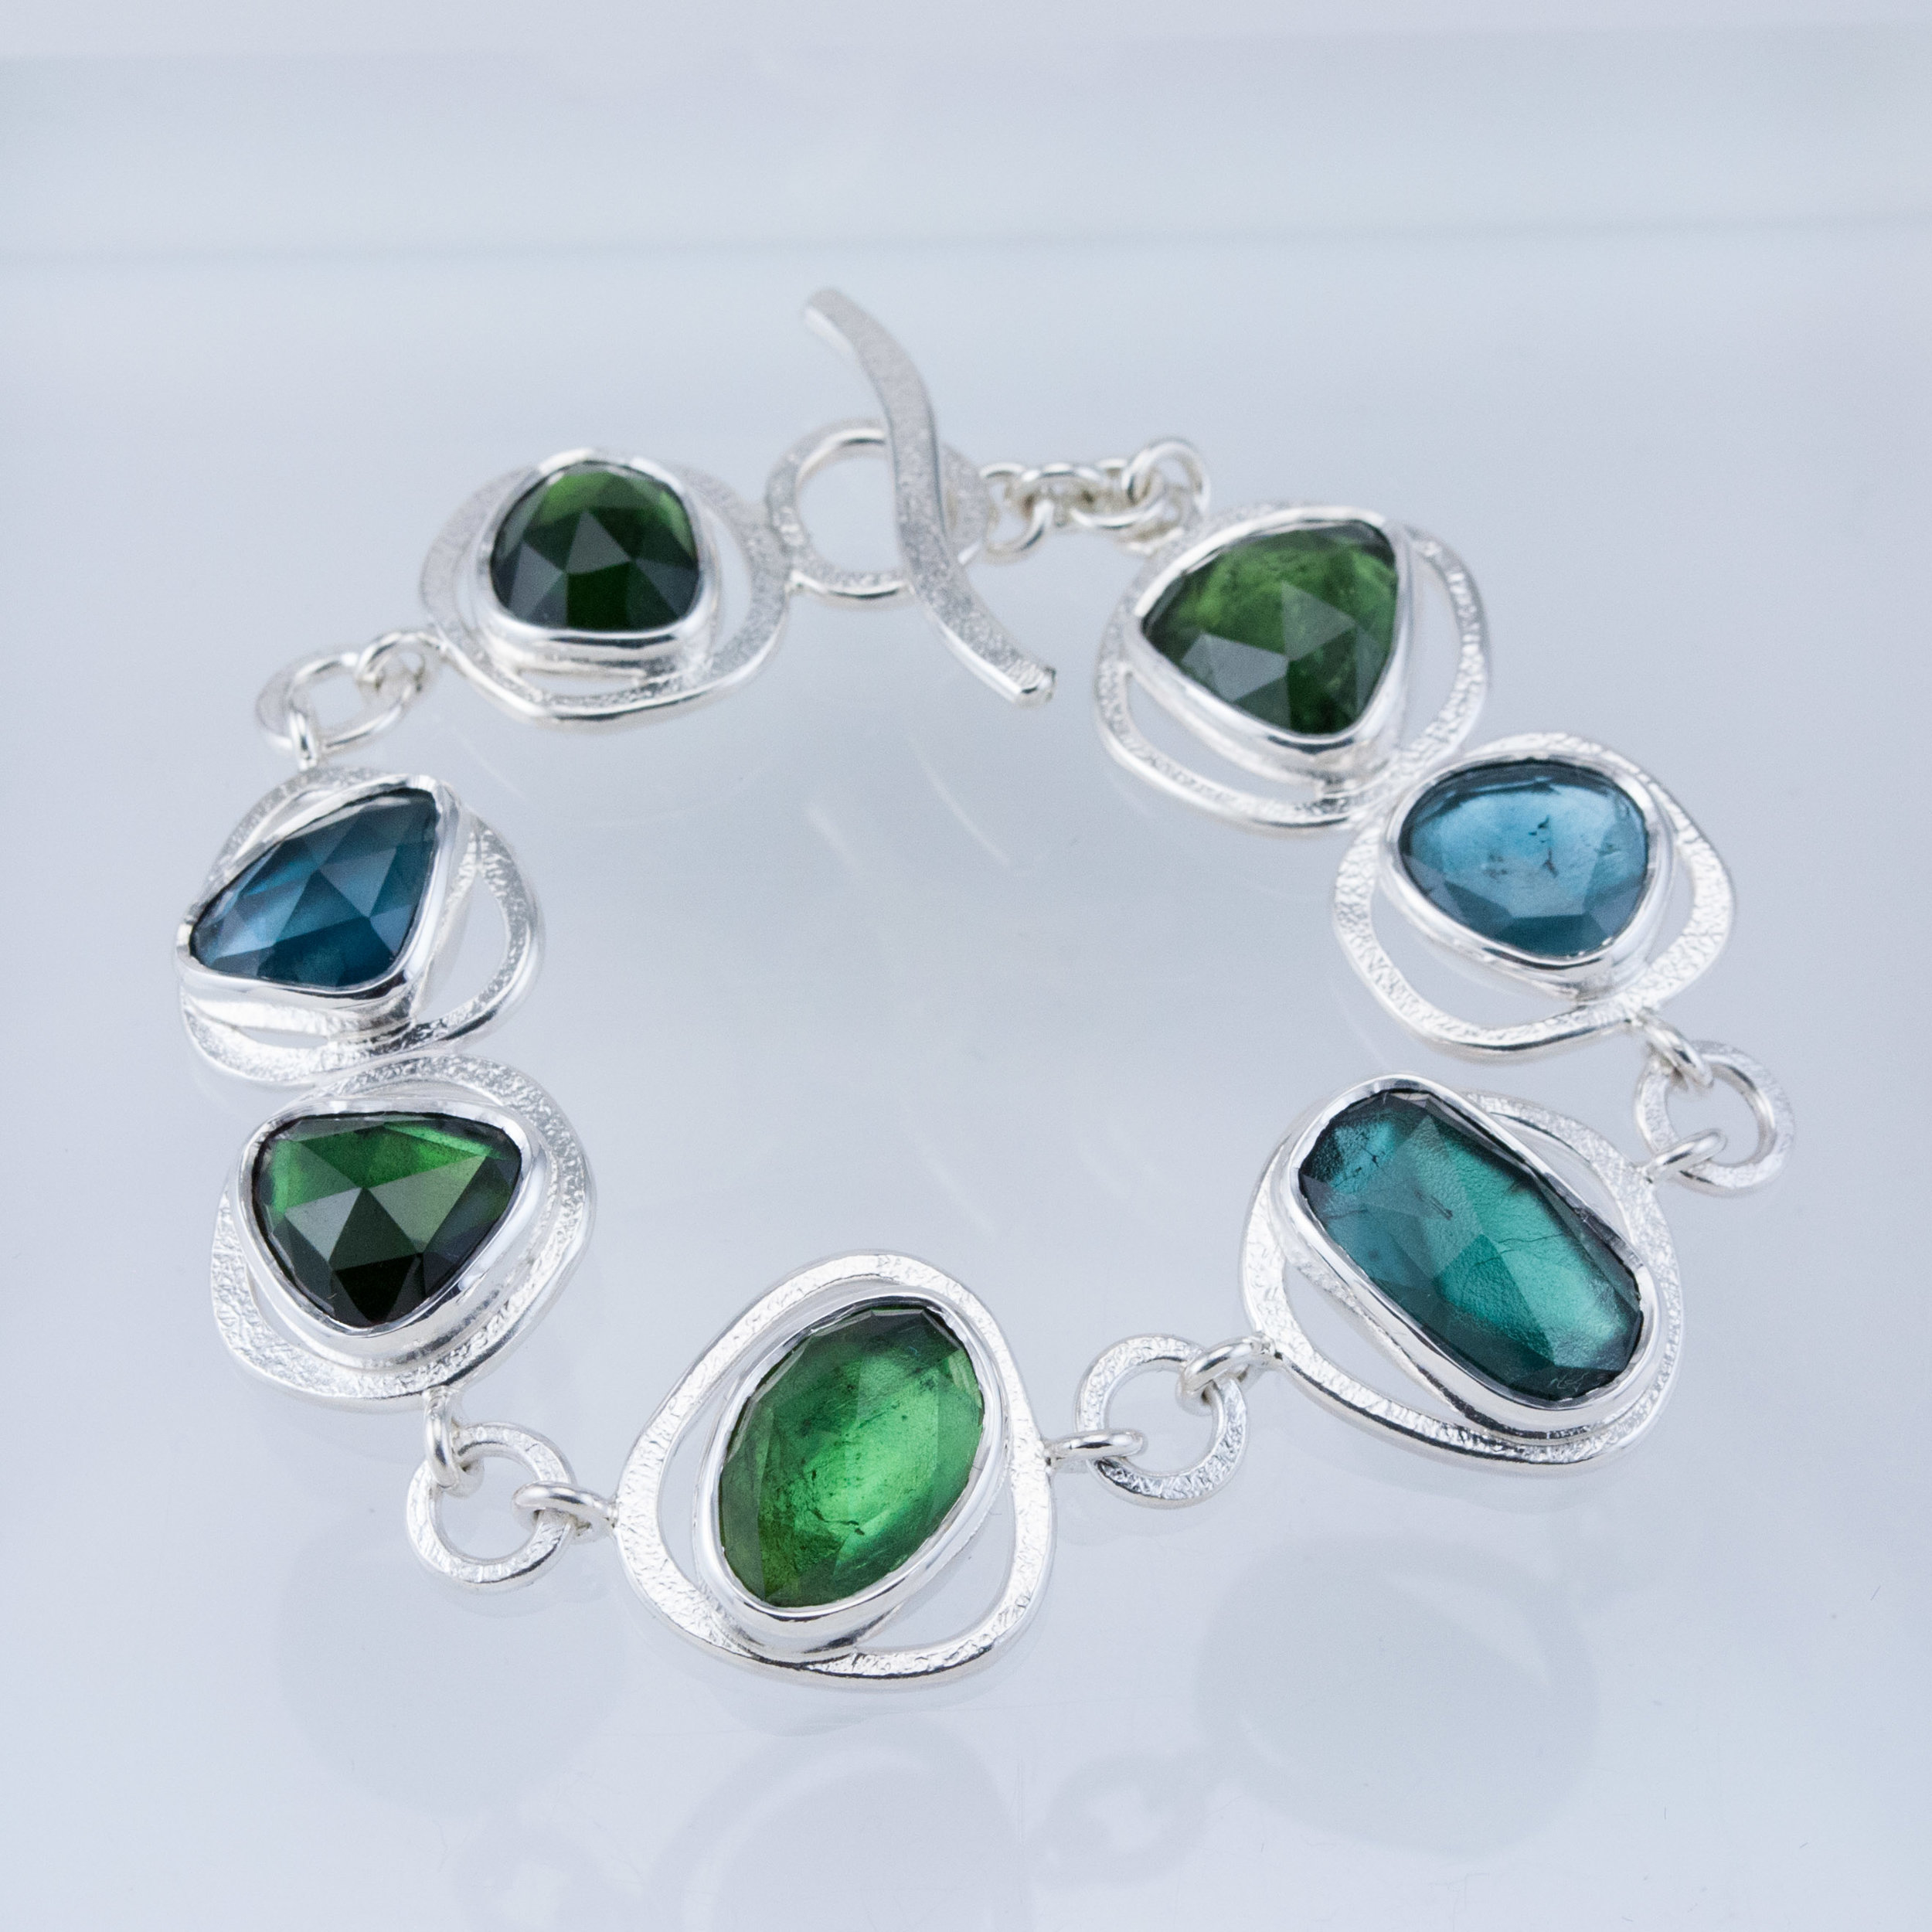 GEO Gem Link Bracelet with Tourmalines